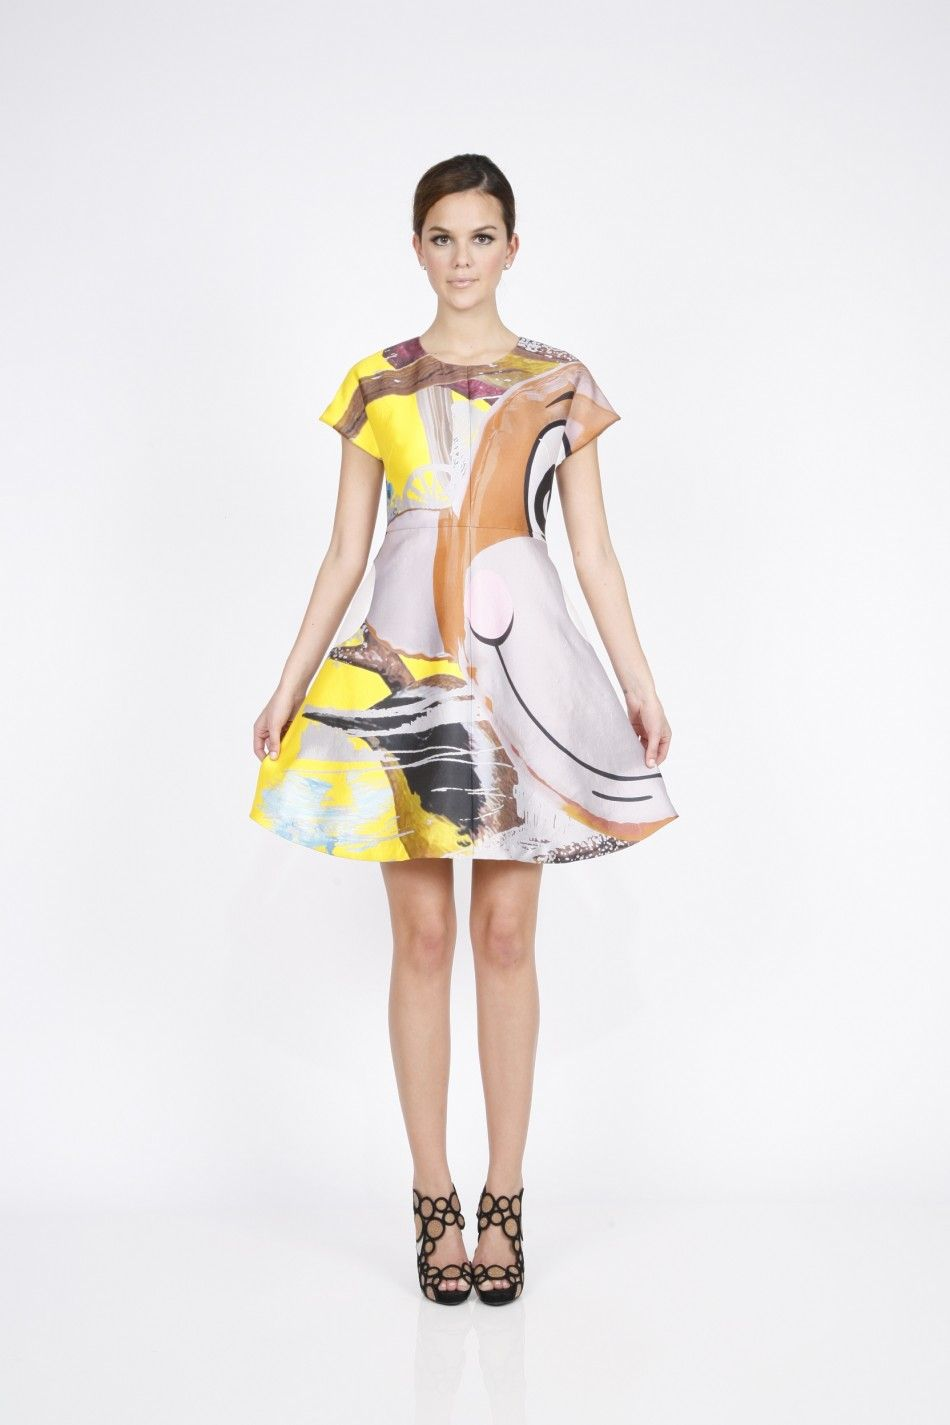 Fashion – Koons Couture   - via http://bit.ly/epinner